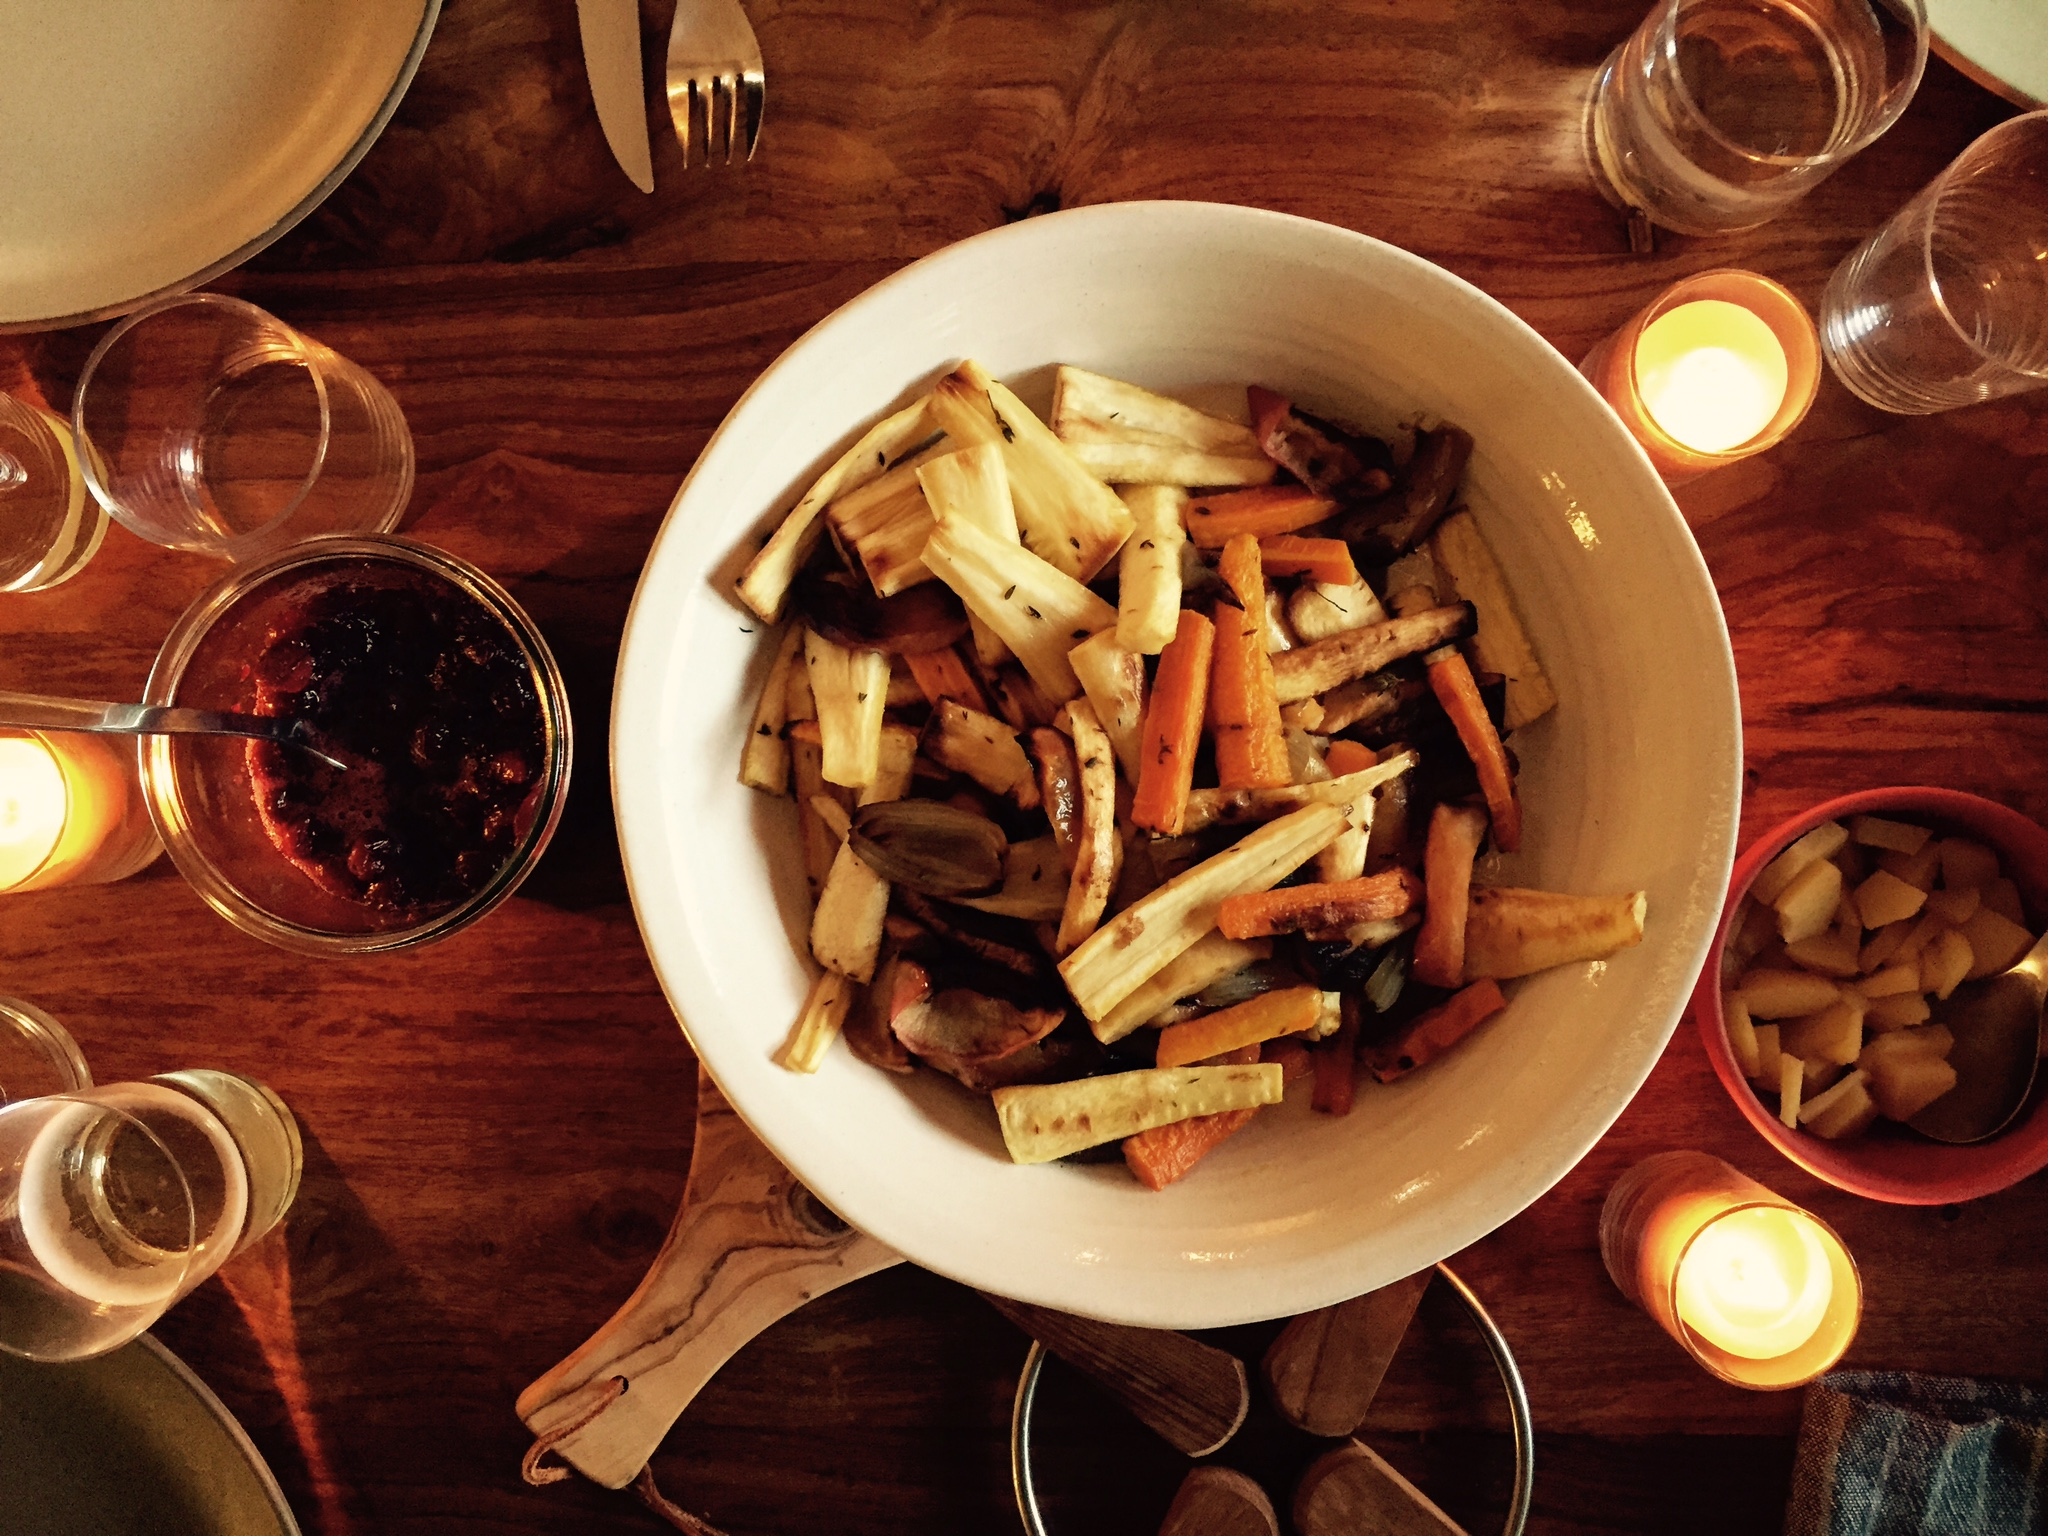 Roasted Parsnips, Apples, Carrots and Thyme